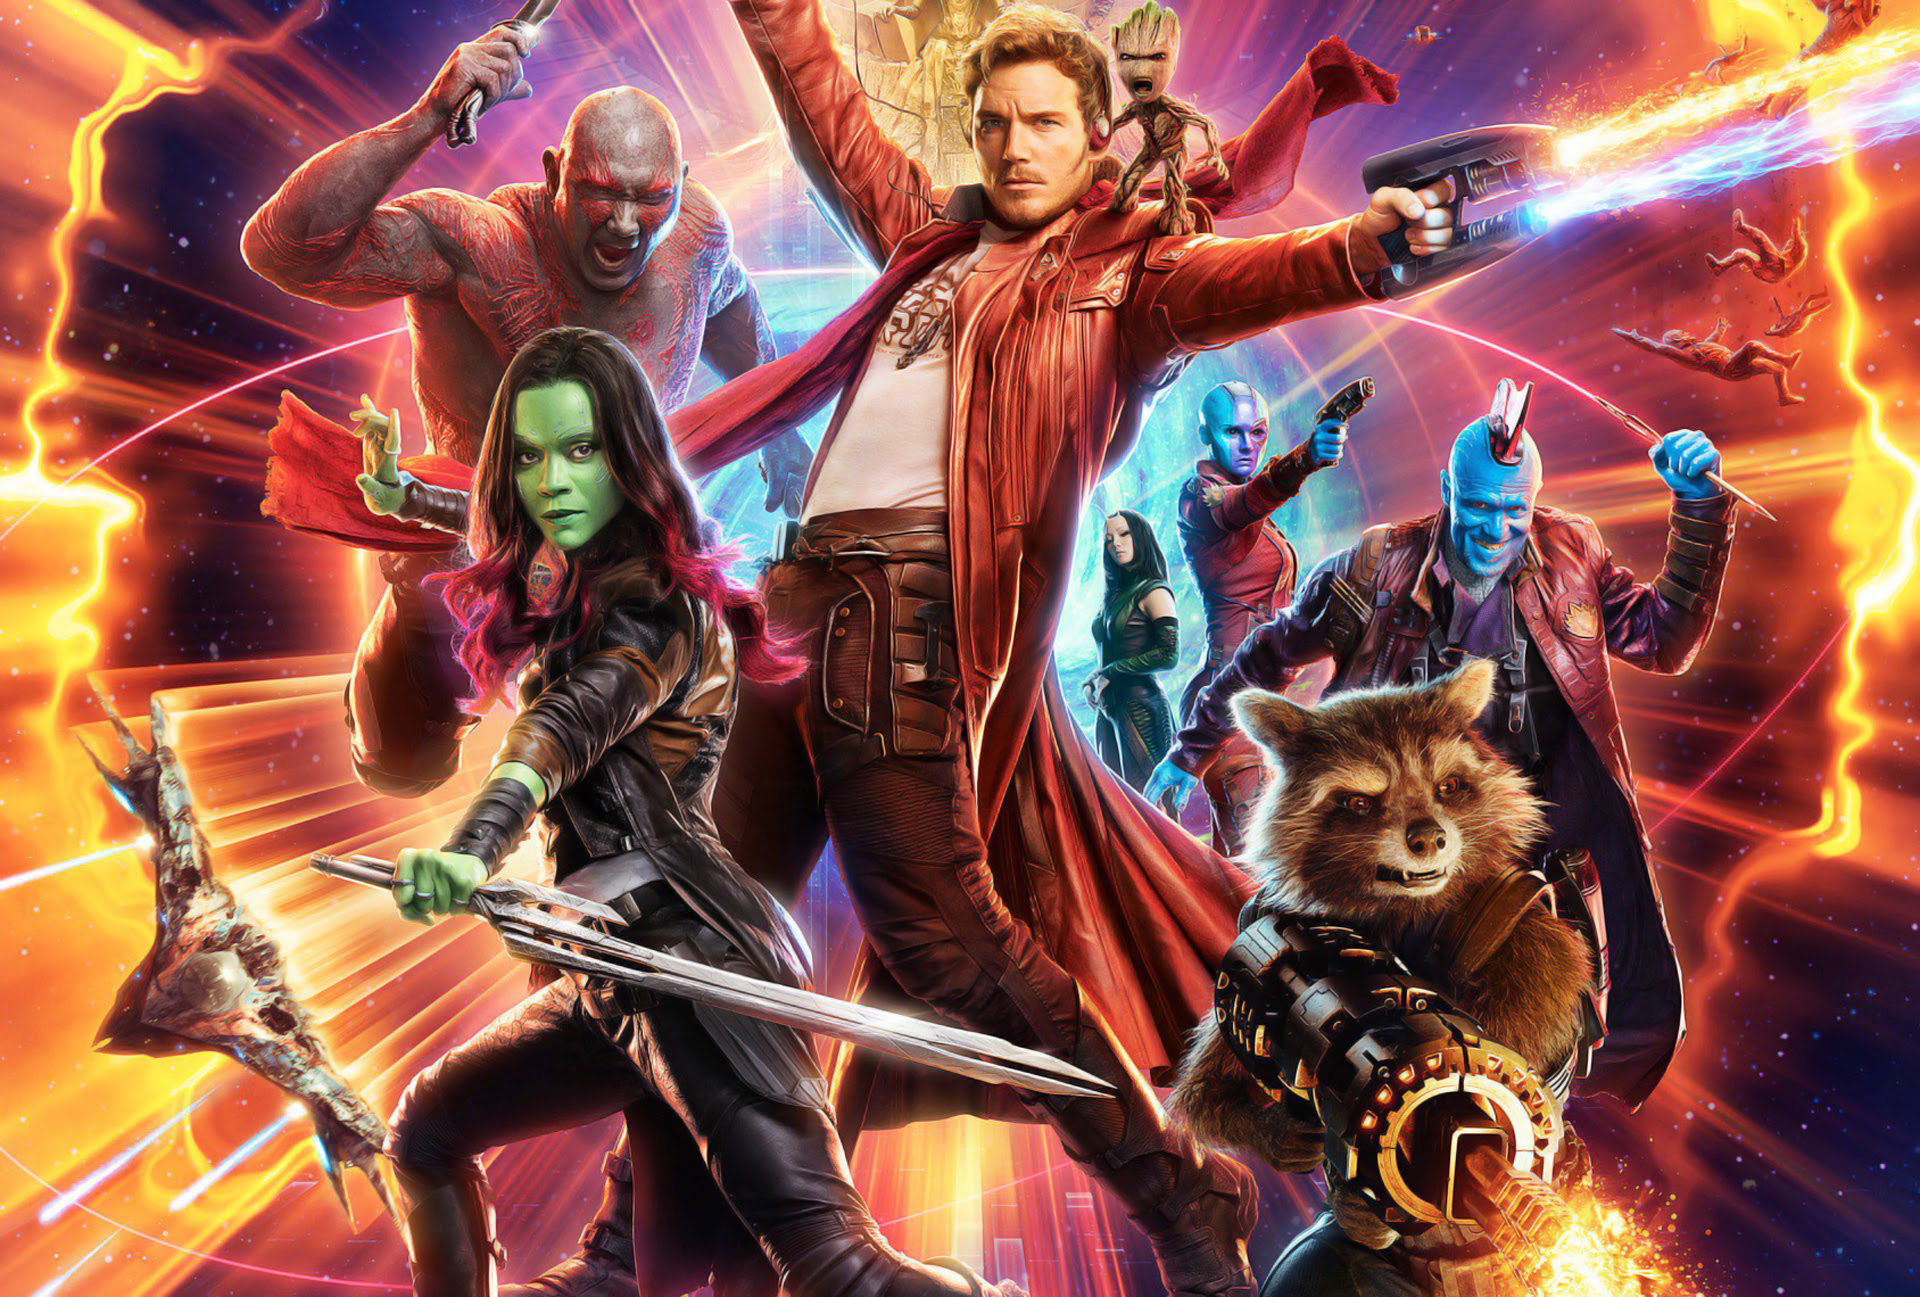 Guardians Of The Galaxy 2 Wallpaper Hd